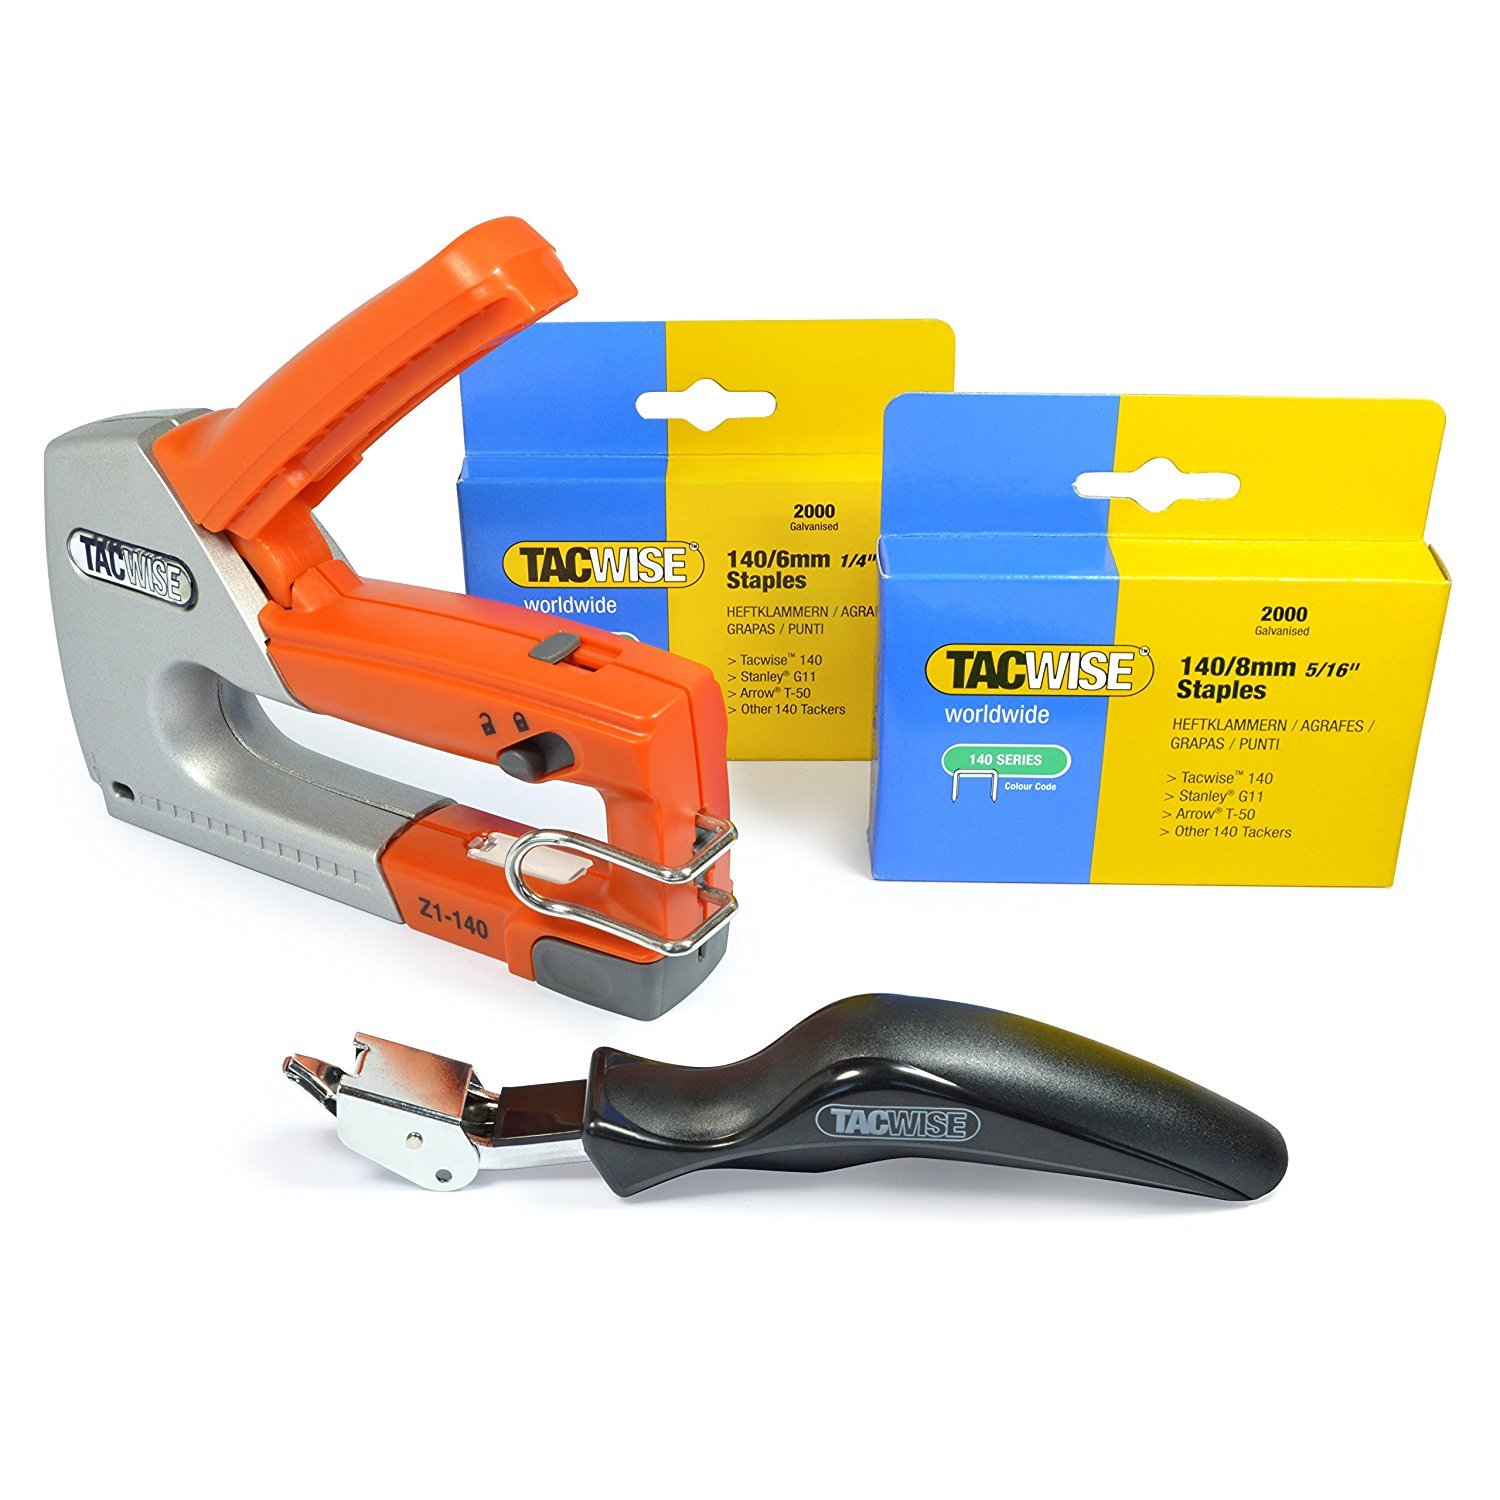 Tacwise 1283 Z1-140 Staple Gun with Staples and Remover Bundle Kit (1283) by TACWISE